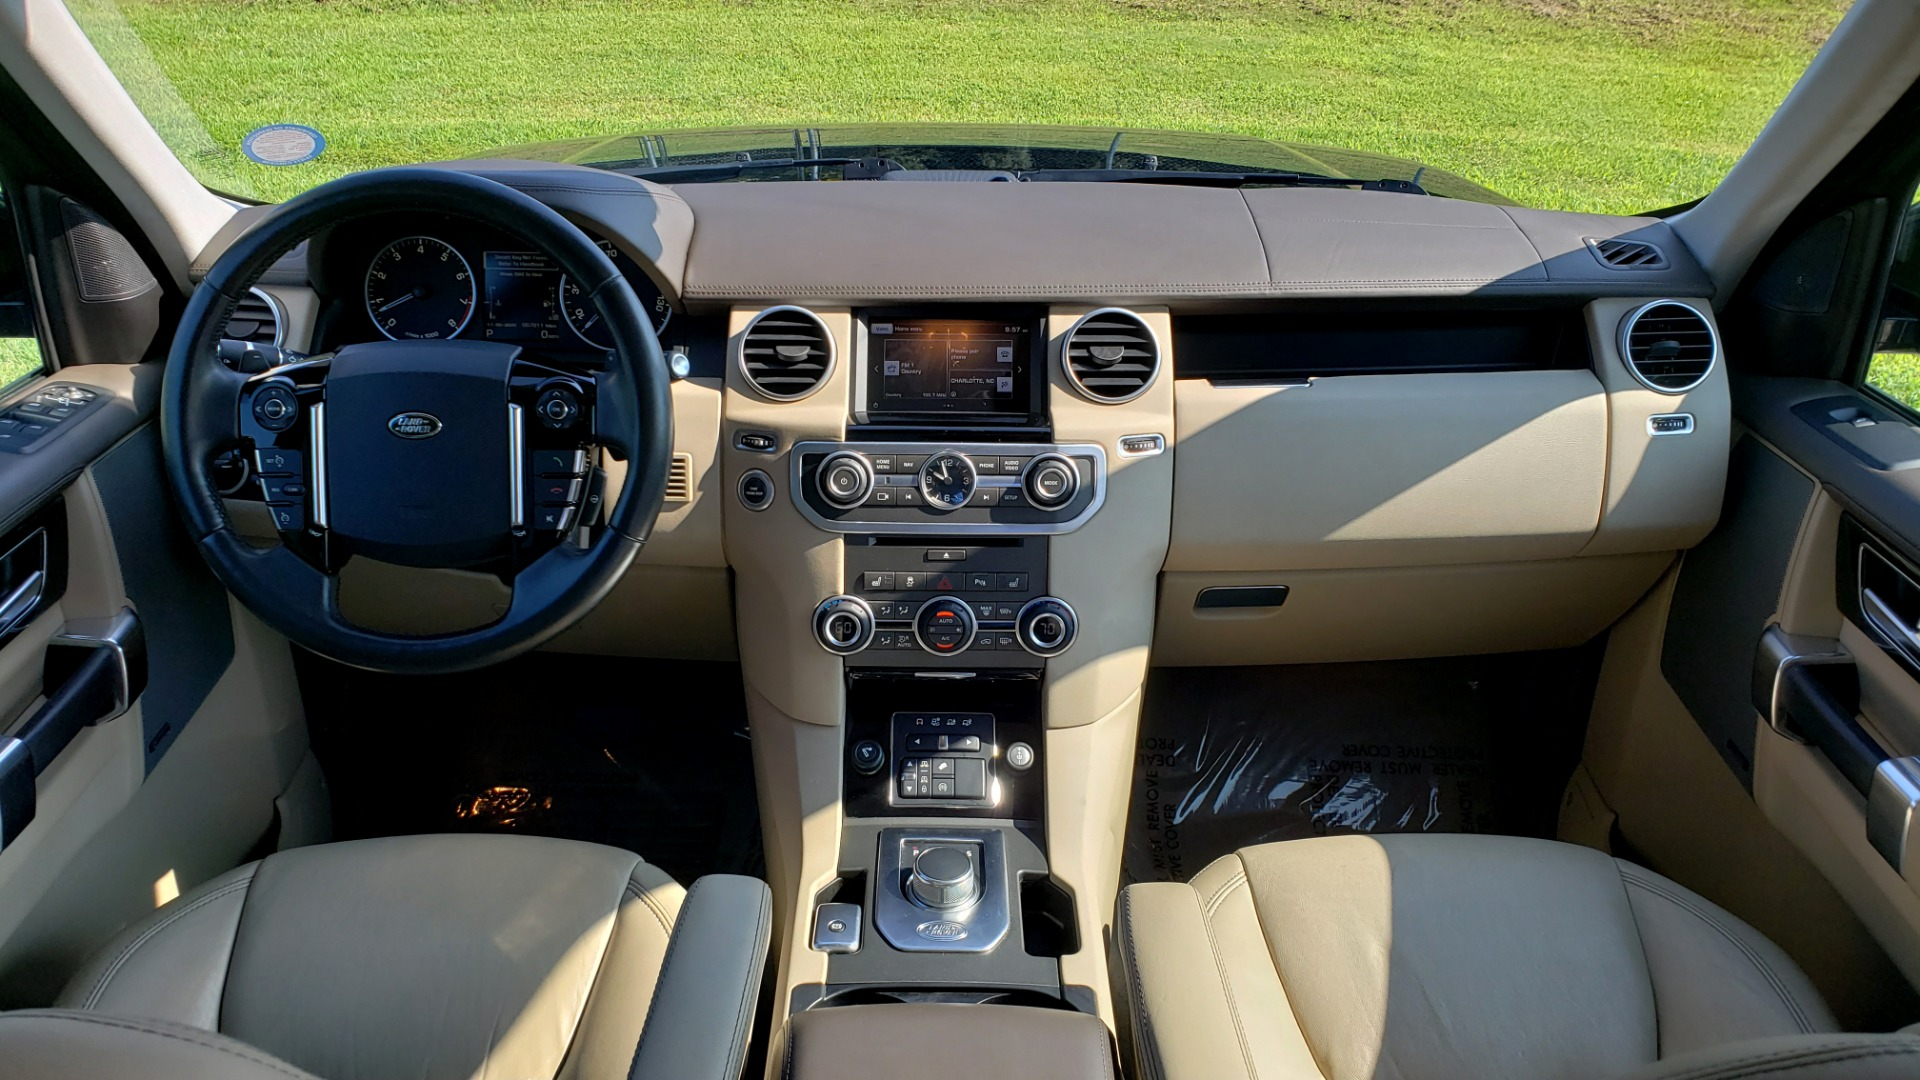 Used 2016 Land Rover LR4 HSE LUX LANDMARK EDITION / NAV / HTD STS / SUNROOF / REARVIEW for sale Sold at Formula Imports in Charlotte NC 28227 76